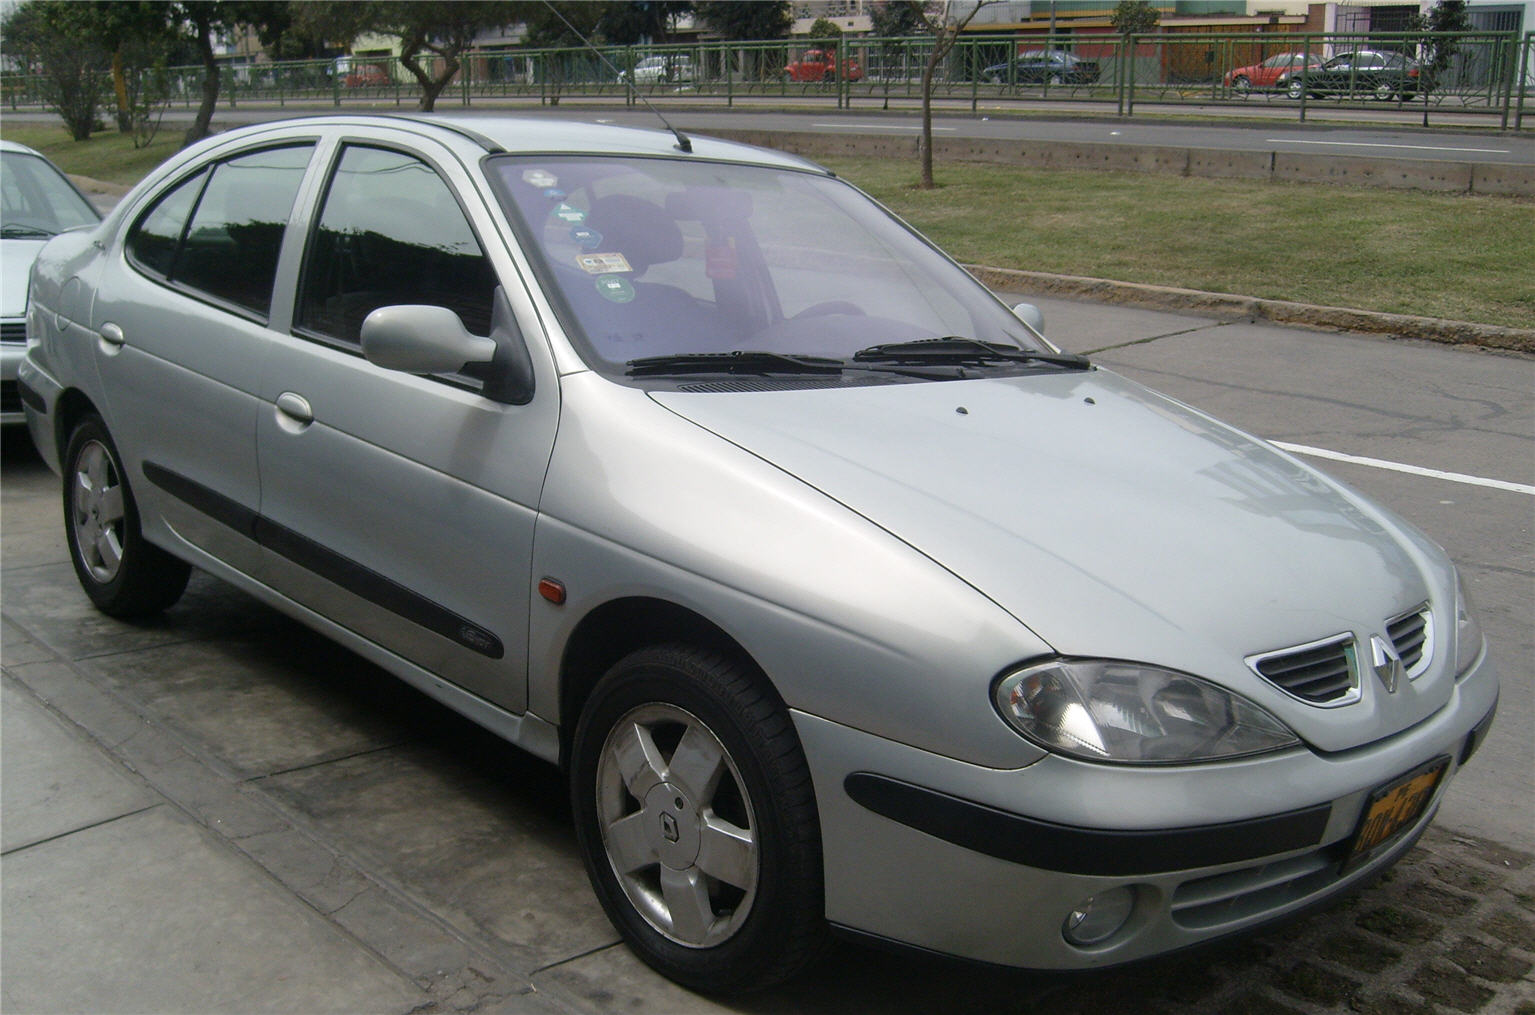 2003 Renault Megane II Saloon photo - 2